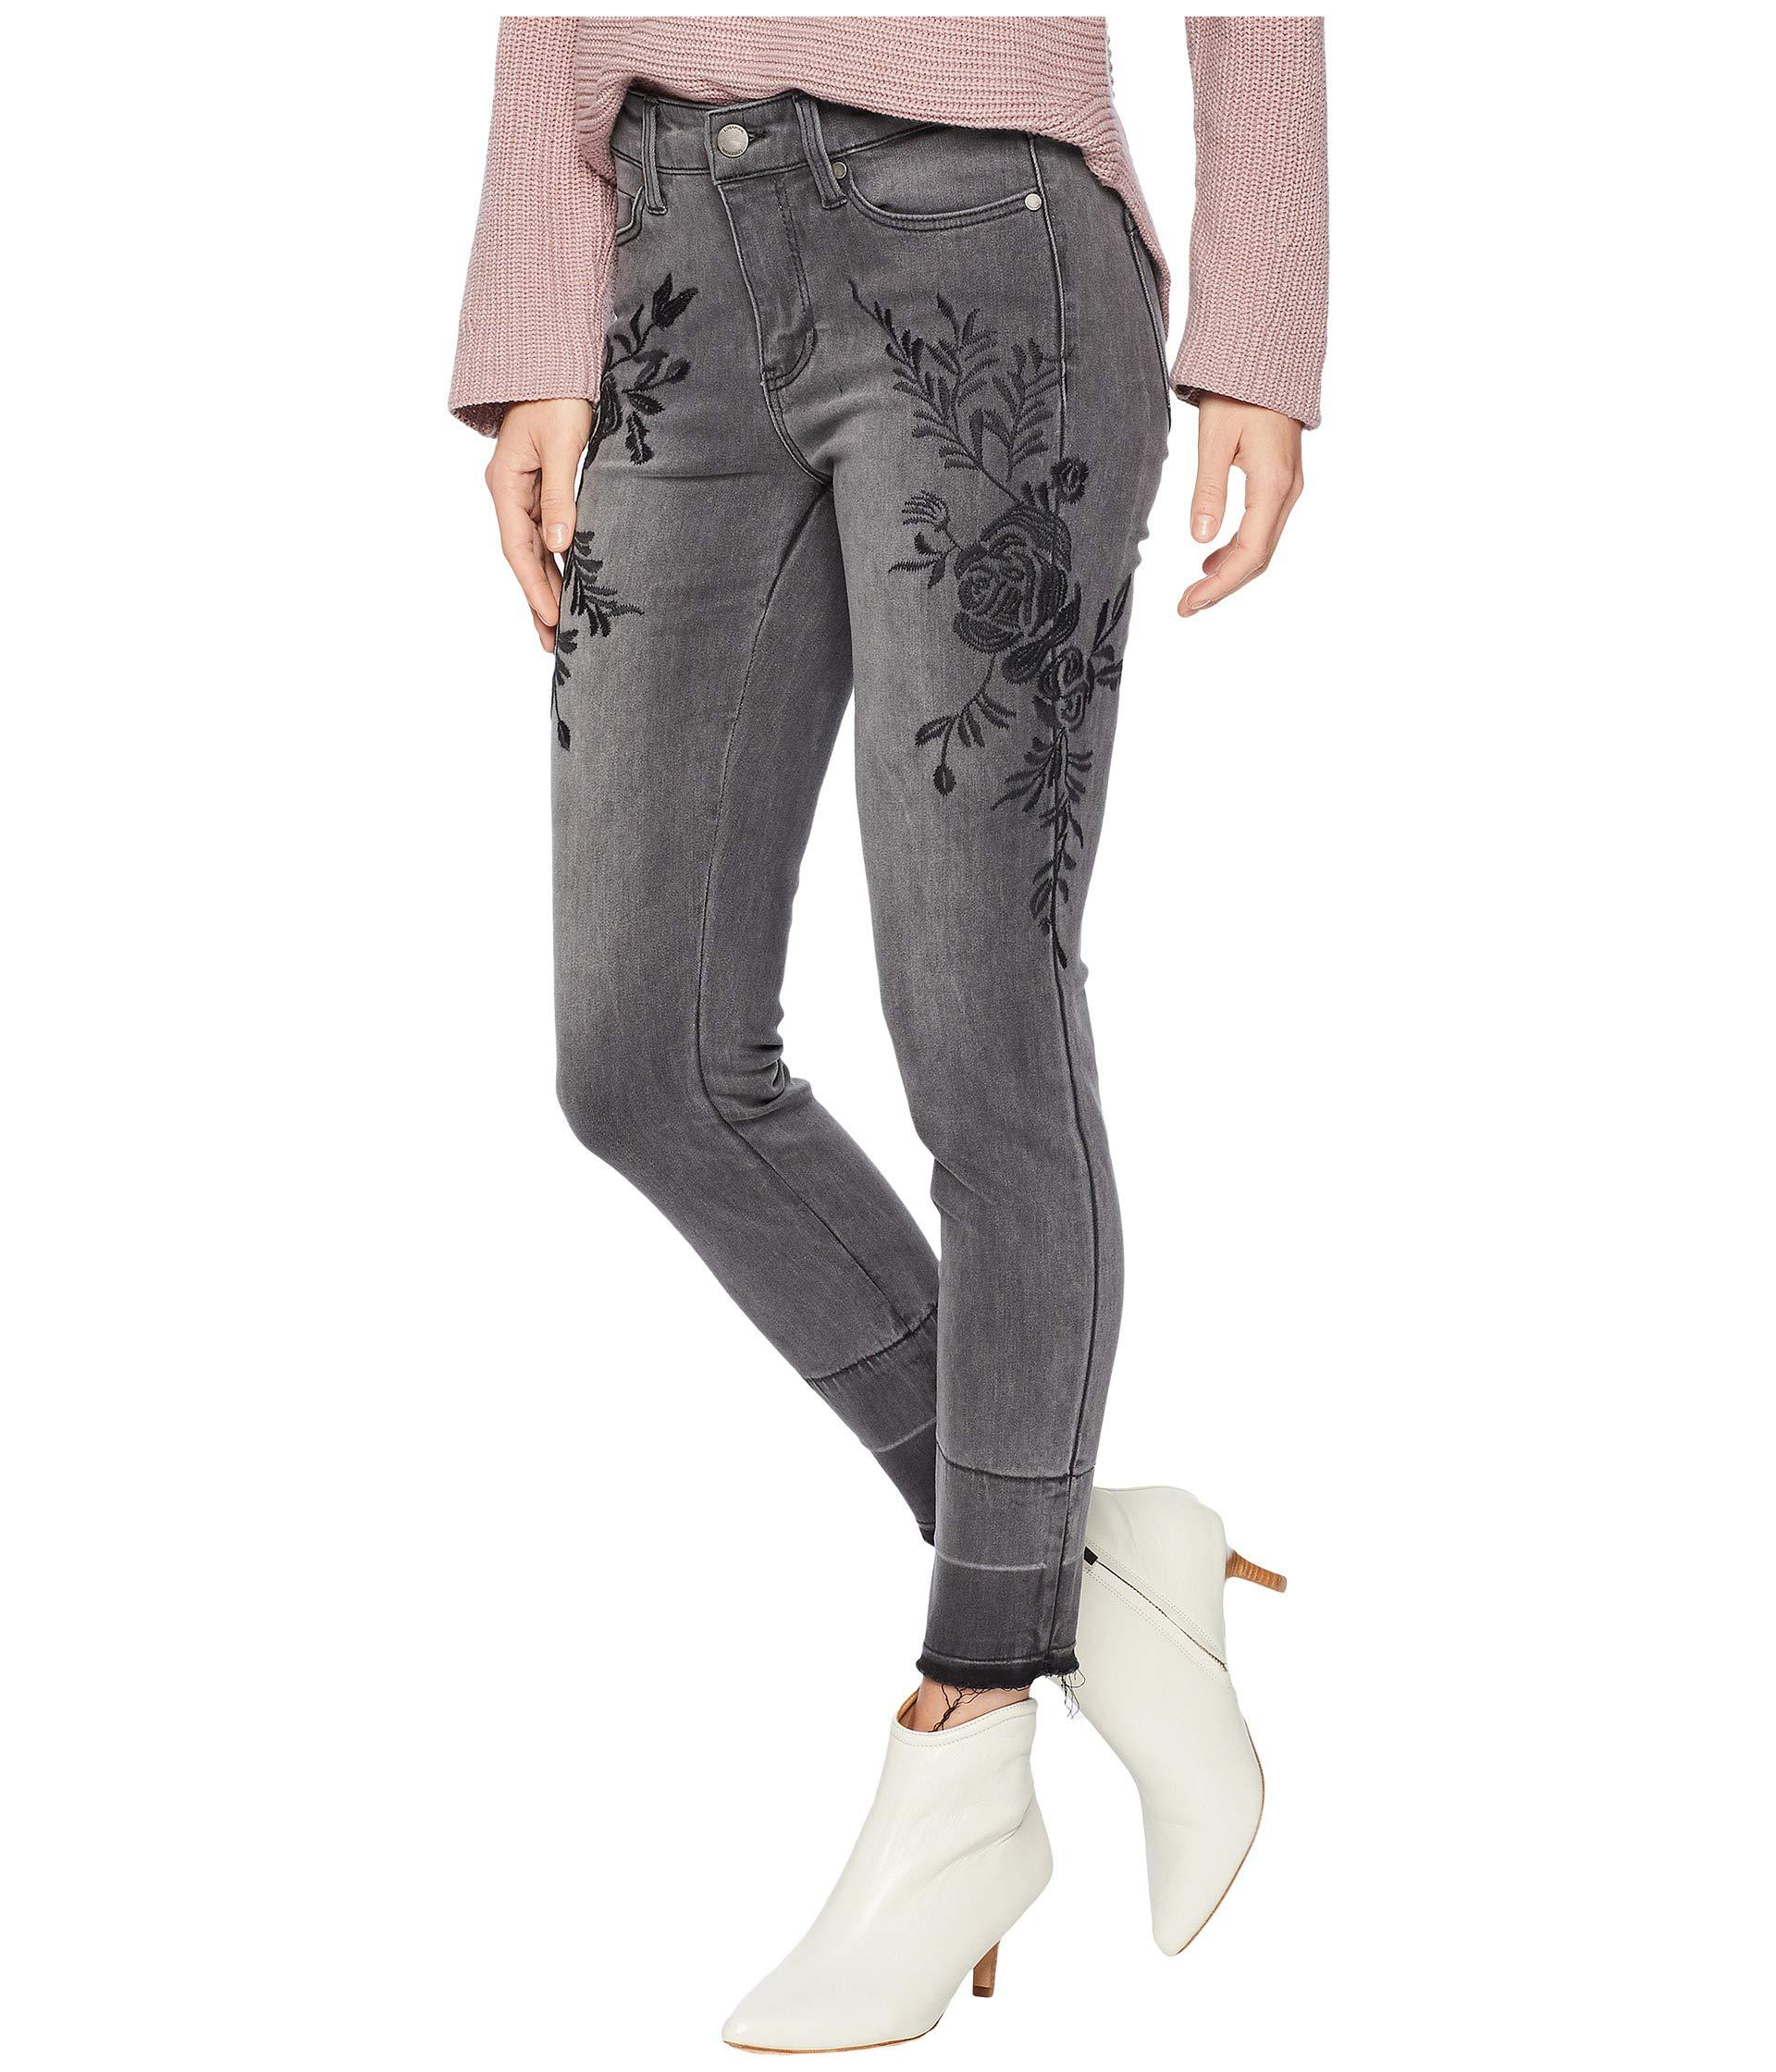 5d016d26759c4 Lyst - Liverpool Jeans Company Sadie Ankle Released Hem Embroidered In Soft  Stretch Denim In Titanium Wash (titanium Wash) Women s Jeans in Blue